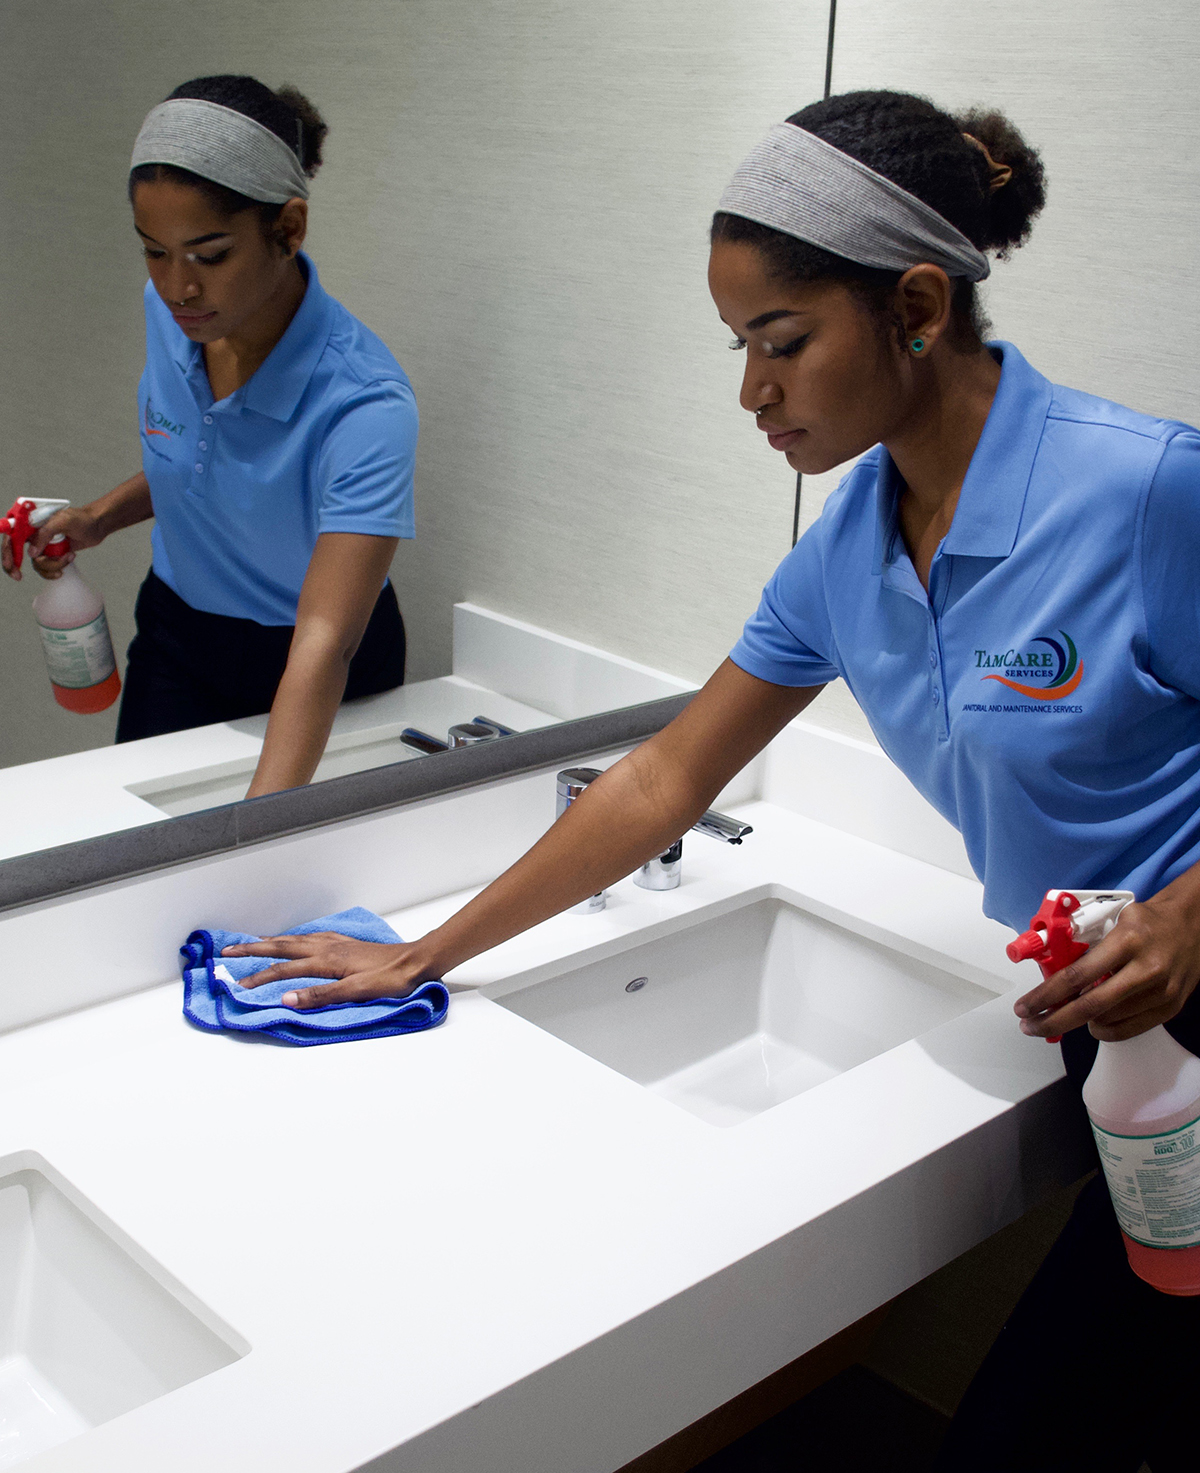 commercial janitorial services tamcare services west palm beach